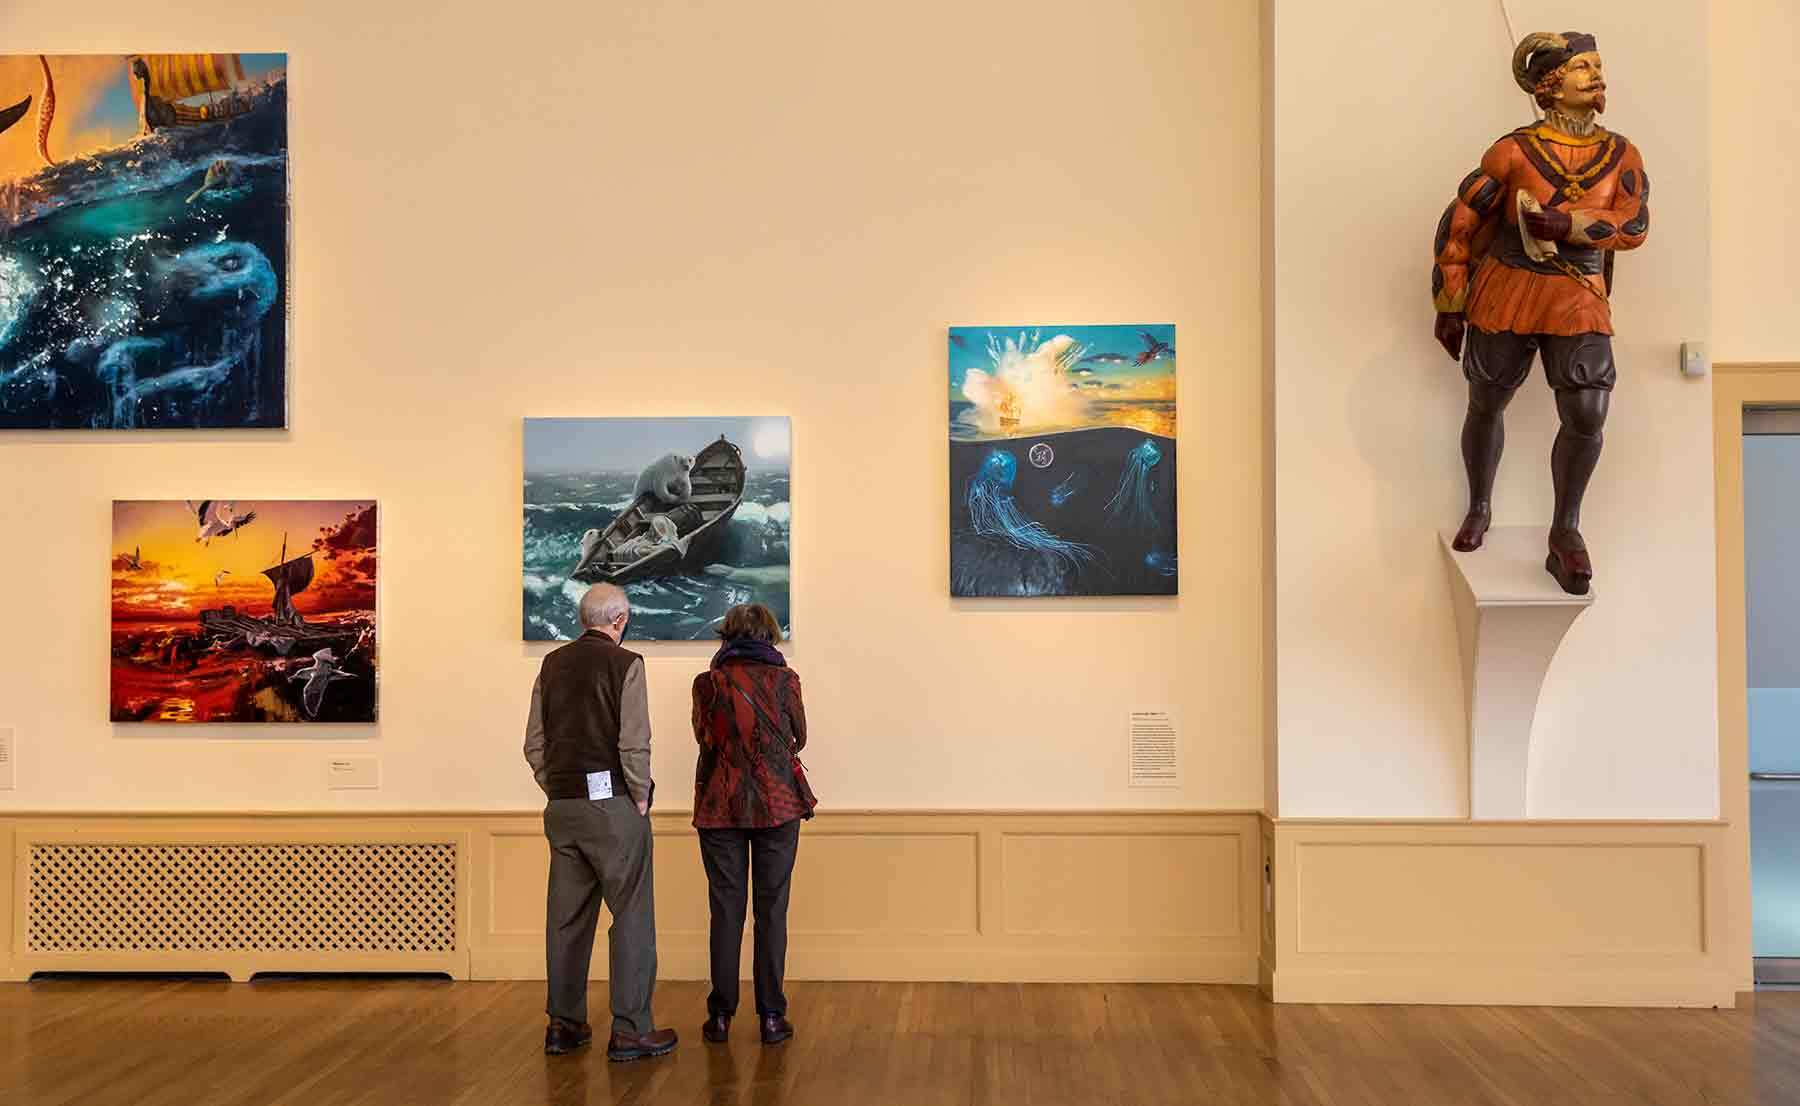 Two people looking at paintings in East India Marine Hall